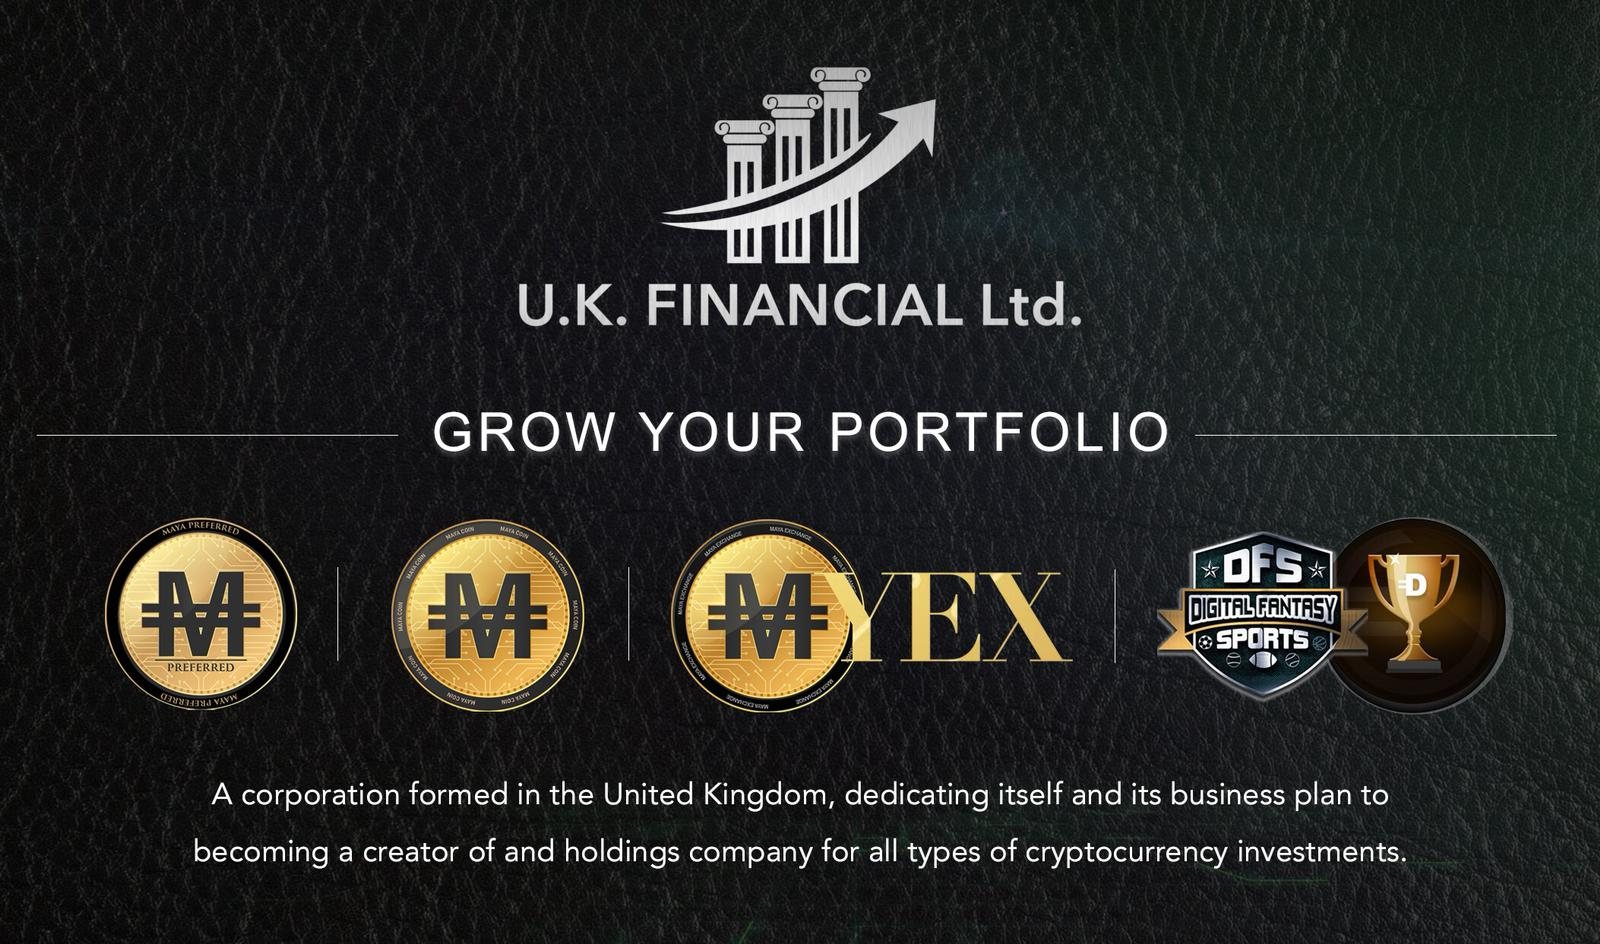 U.K. Financial Ltd. Announces Massive Airdrop Campaign